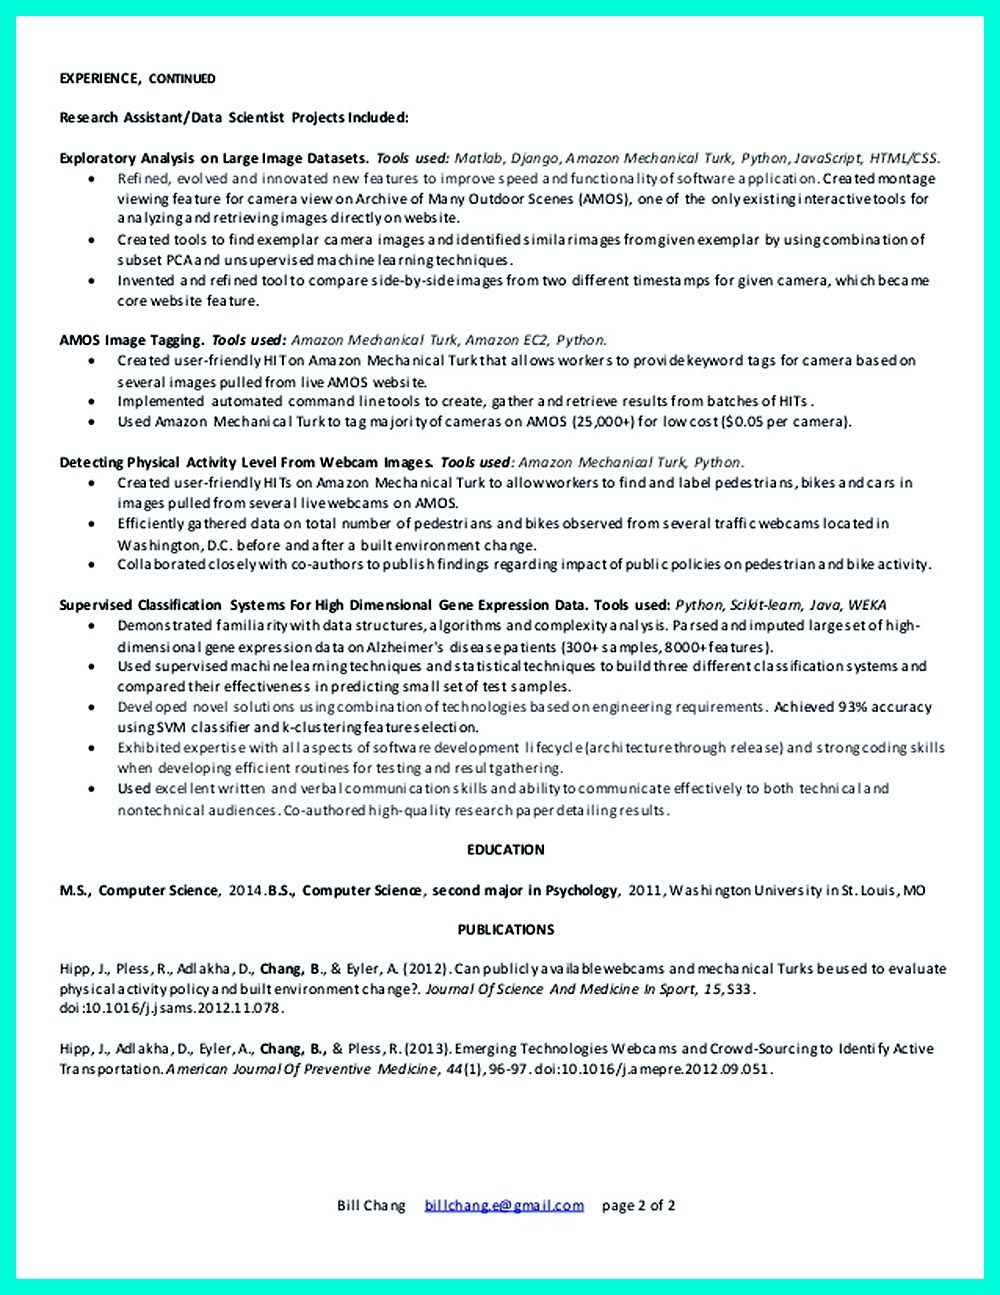 Lovely Data Scientist Resume Include Everything About Your Education, Skill,  Qualification And Your Previous Experience Even Your Achievement As Well As  Addi... ...